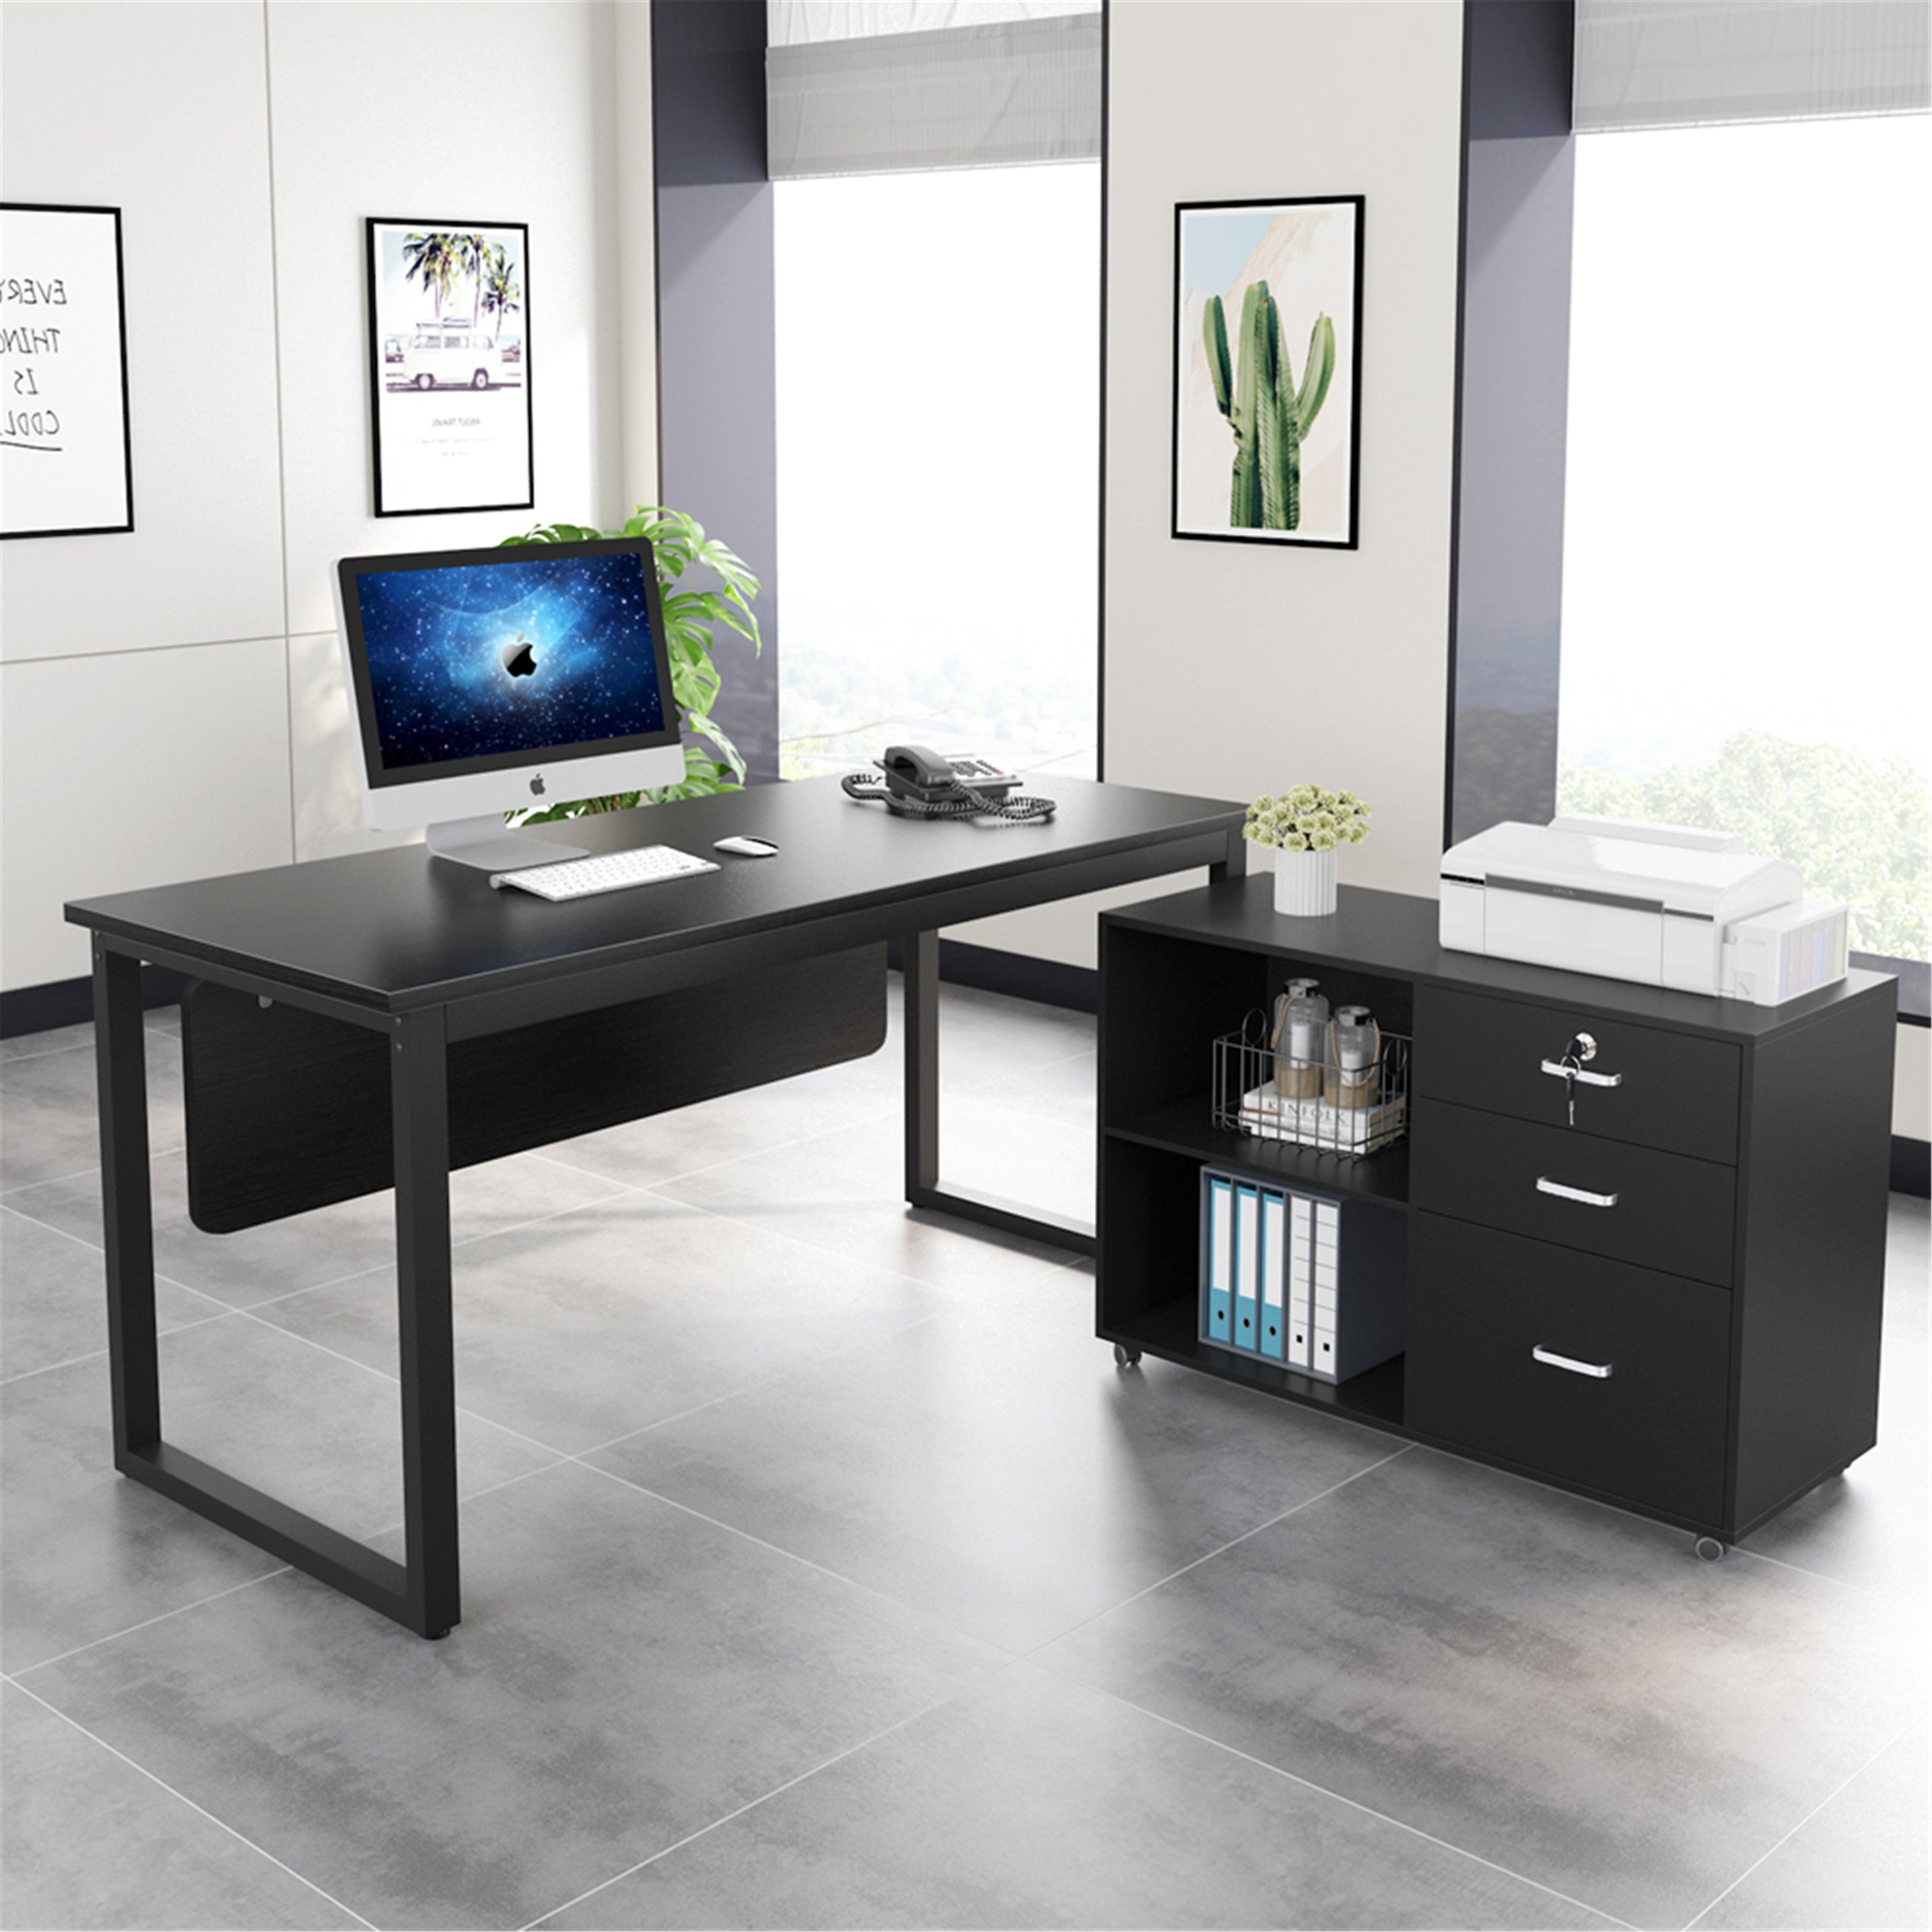 55 Inches L Shaped Computer Desk With Mobile File Cabinet Black Overstock 31669982